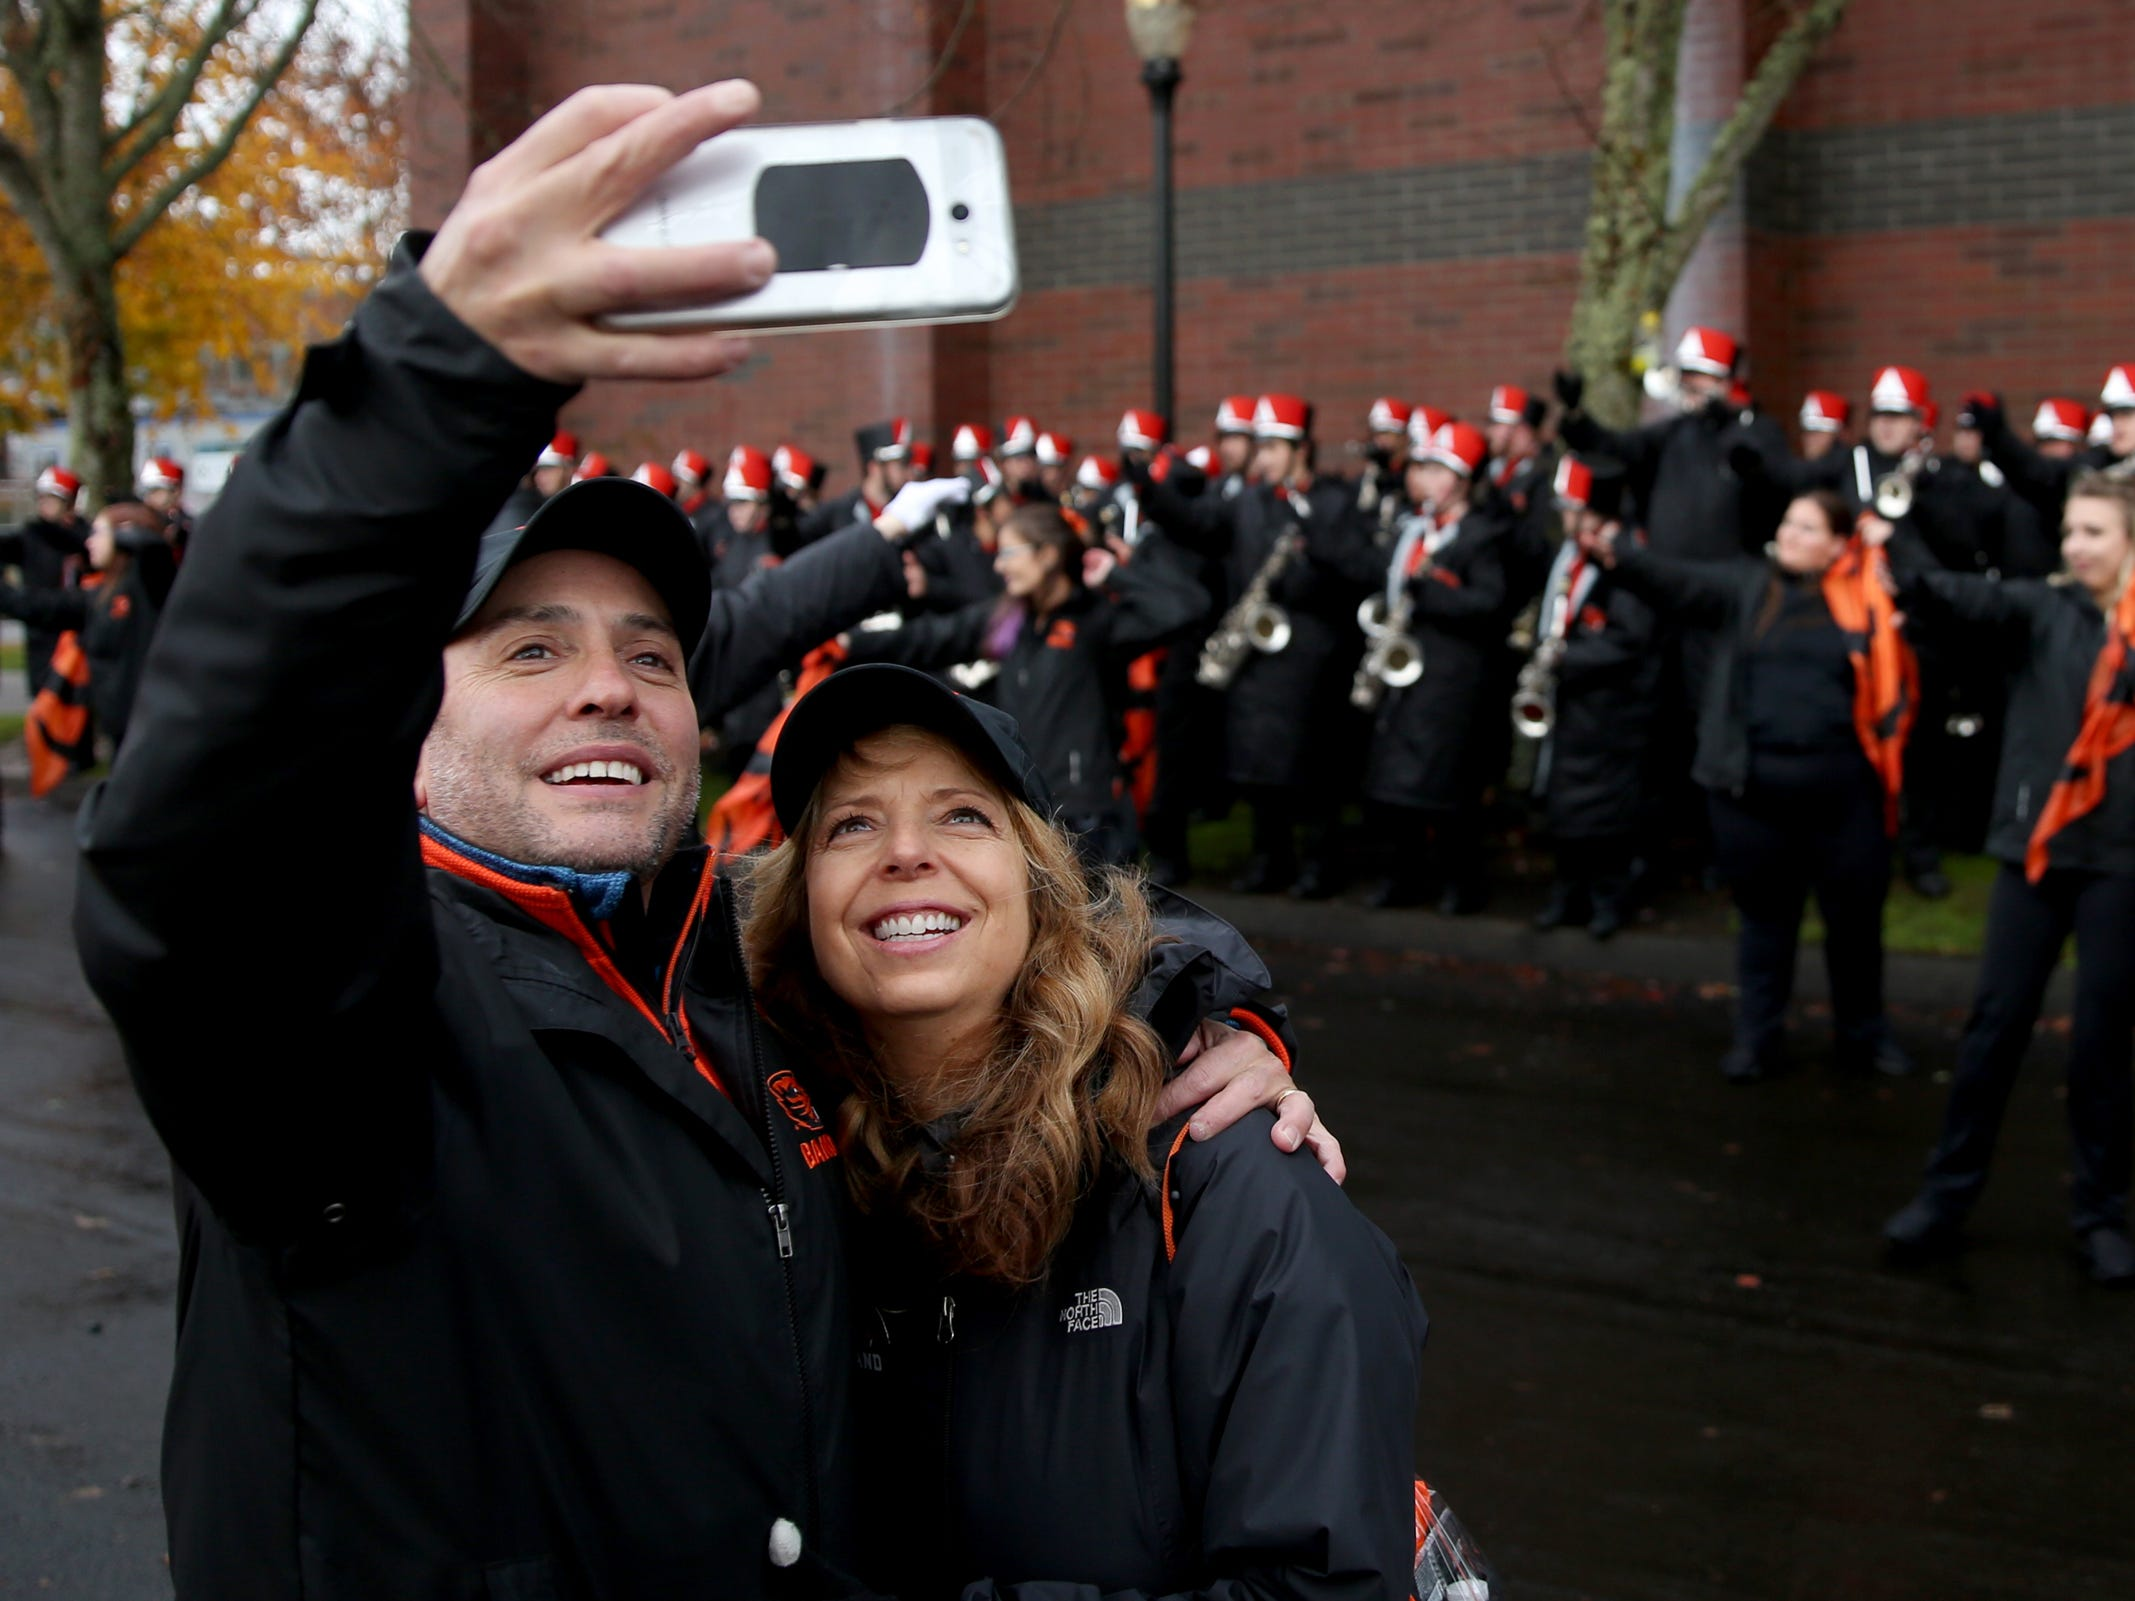 Dennis and Shelly Childers, of Medford, take a photo together with their daughter in the background before the start of the Oregon vs. Oregon State Civil war football game at Oregon State University in Corvallis on Friday, Nov. 23, 2018. Their daughter, Ryleigh Childers, is in the Oregon State marching band.